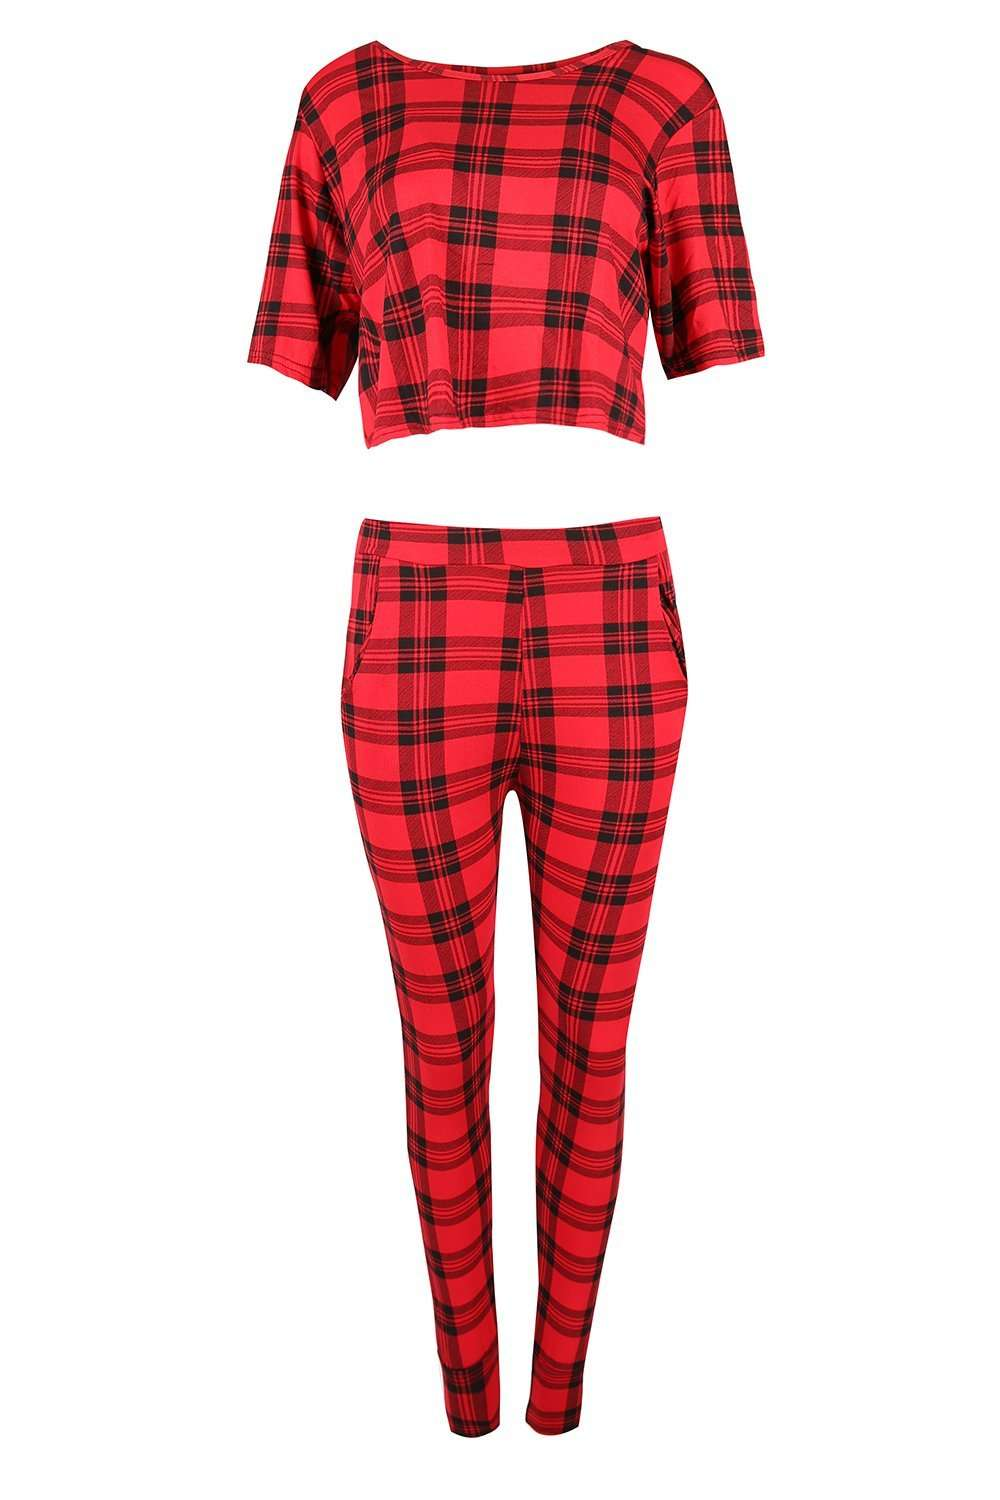 Hannah Red Tartan Lounge Wear Coord - bejealous-com